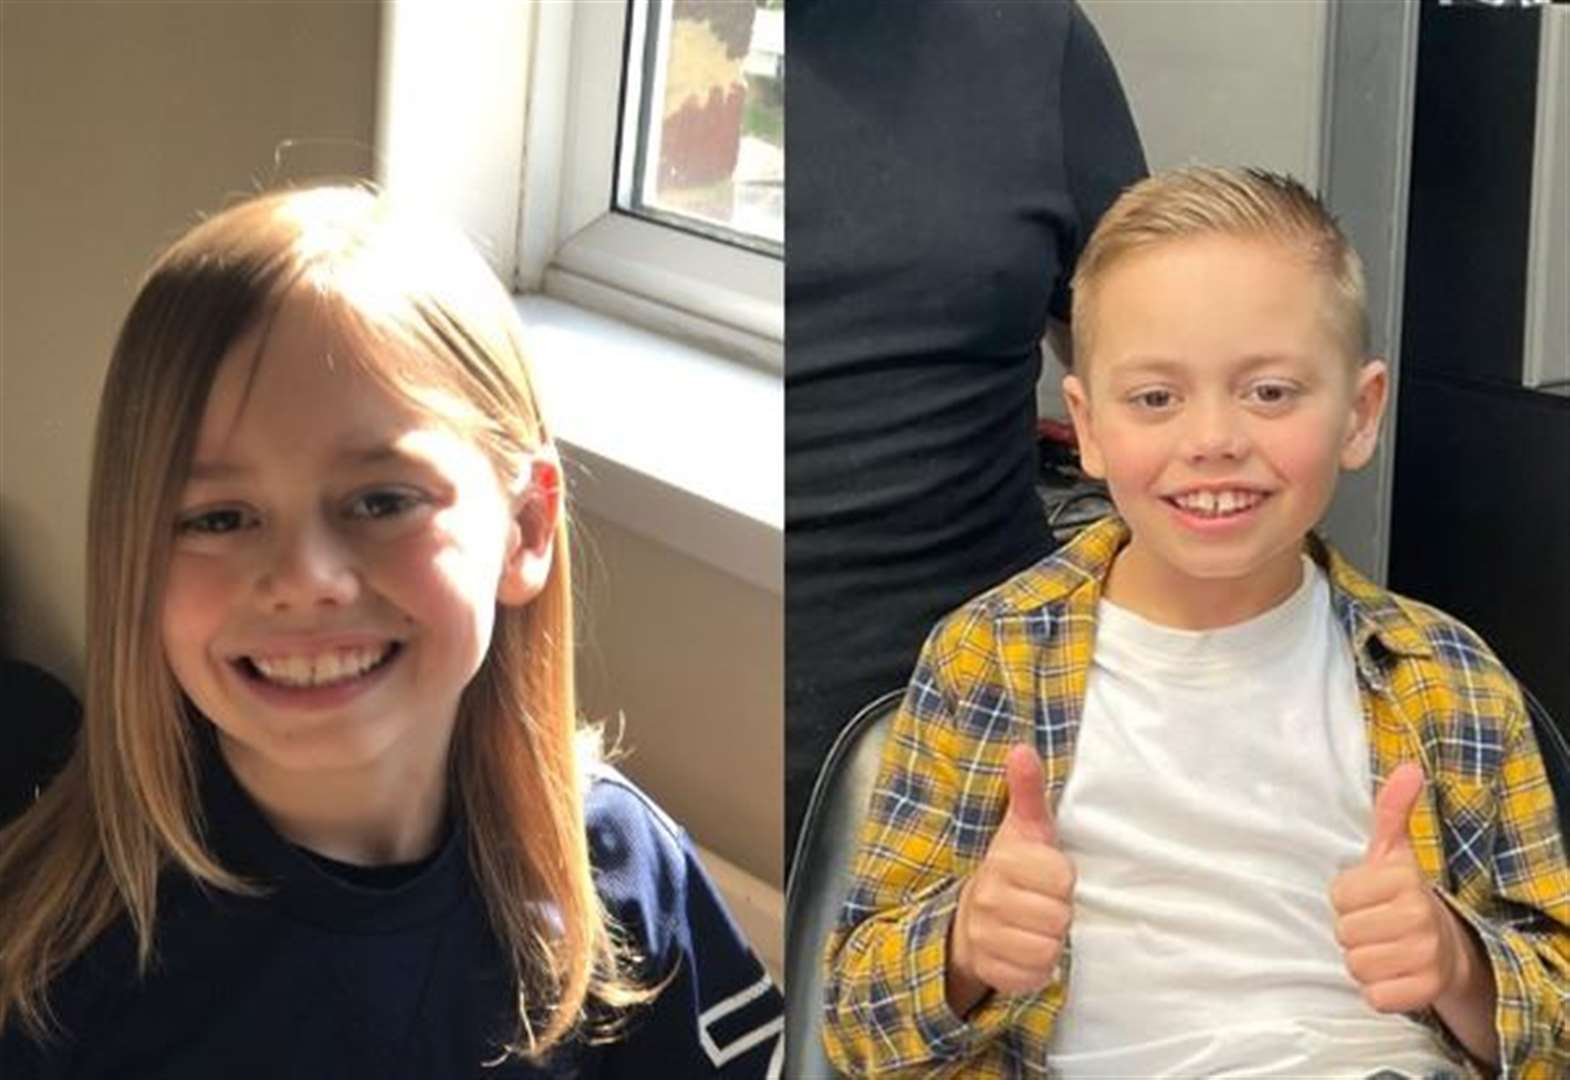 Boy, 8, donates hair to charity